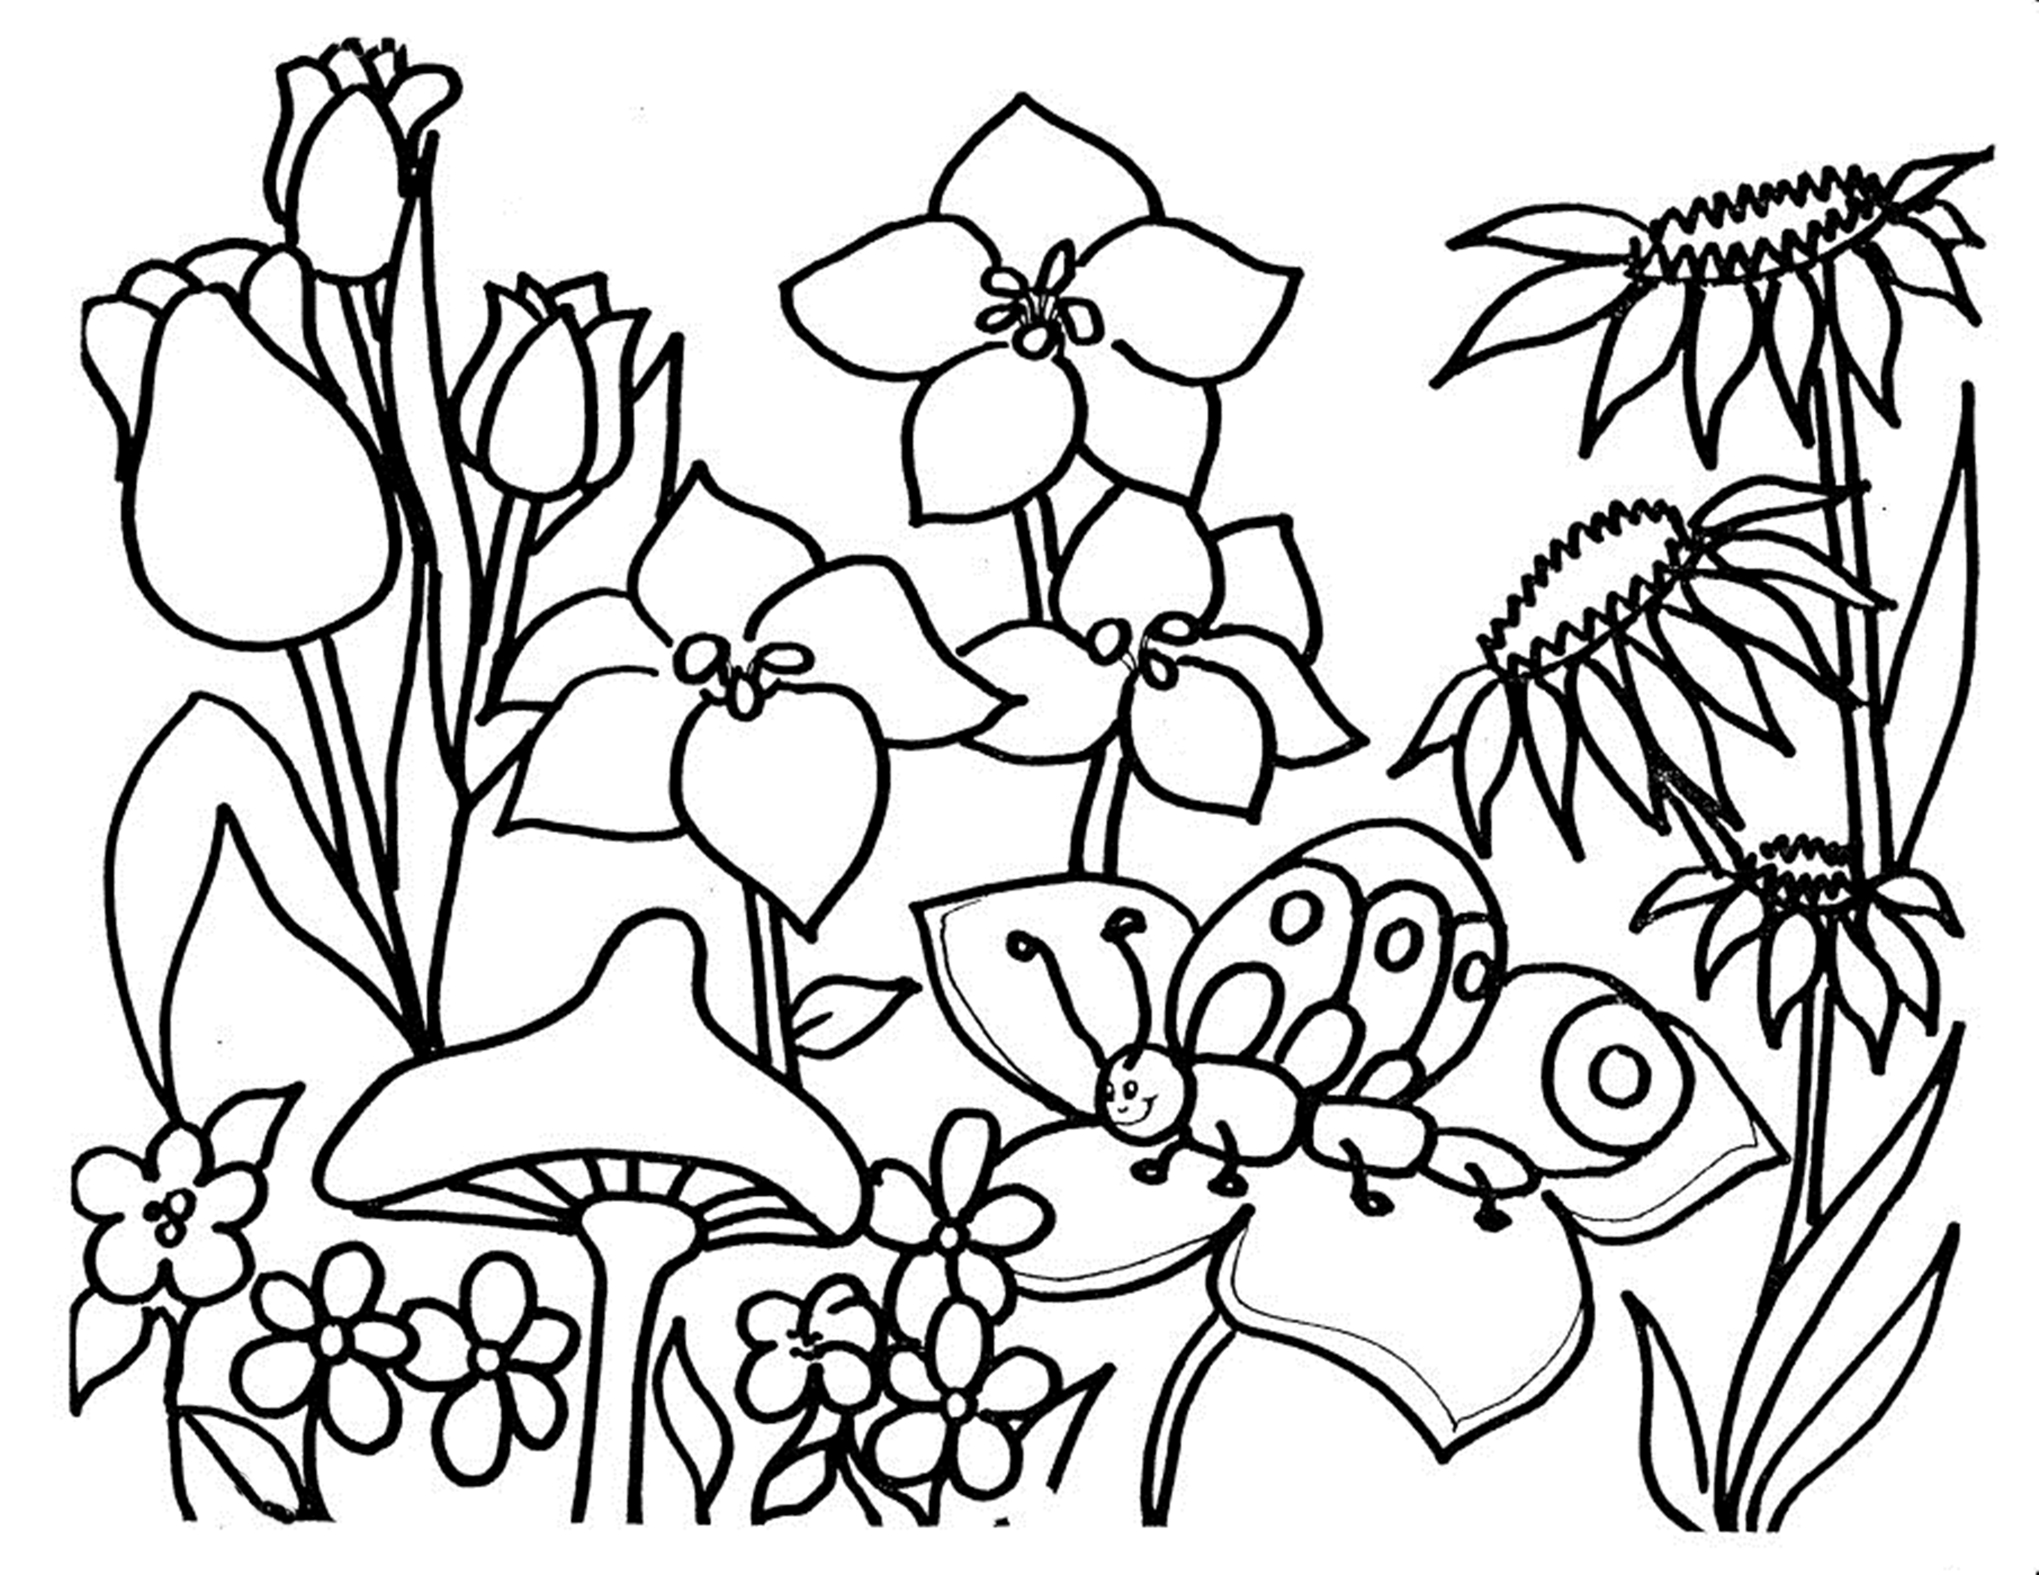 Free Printable Flower Coloring Pages Simple Free Printable Flower Coloring Pages For Kids  Best Coloring .